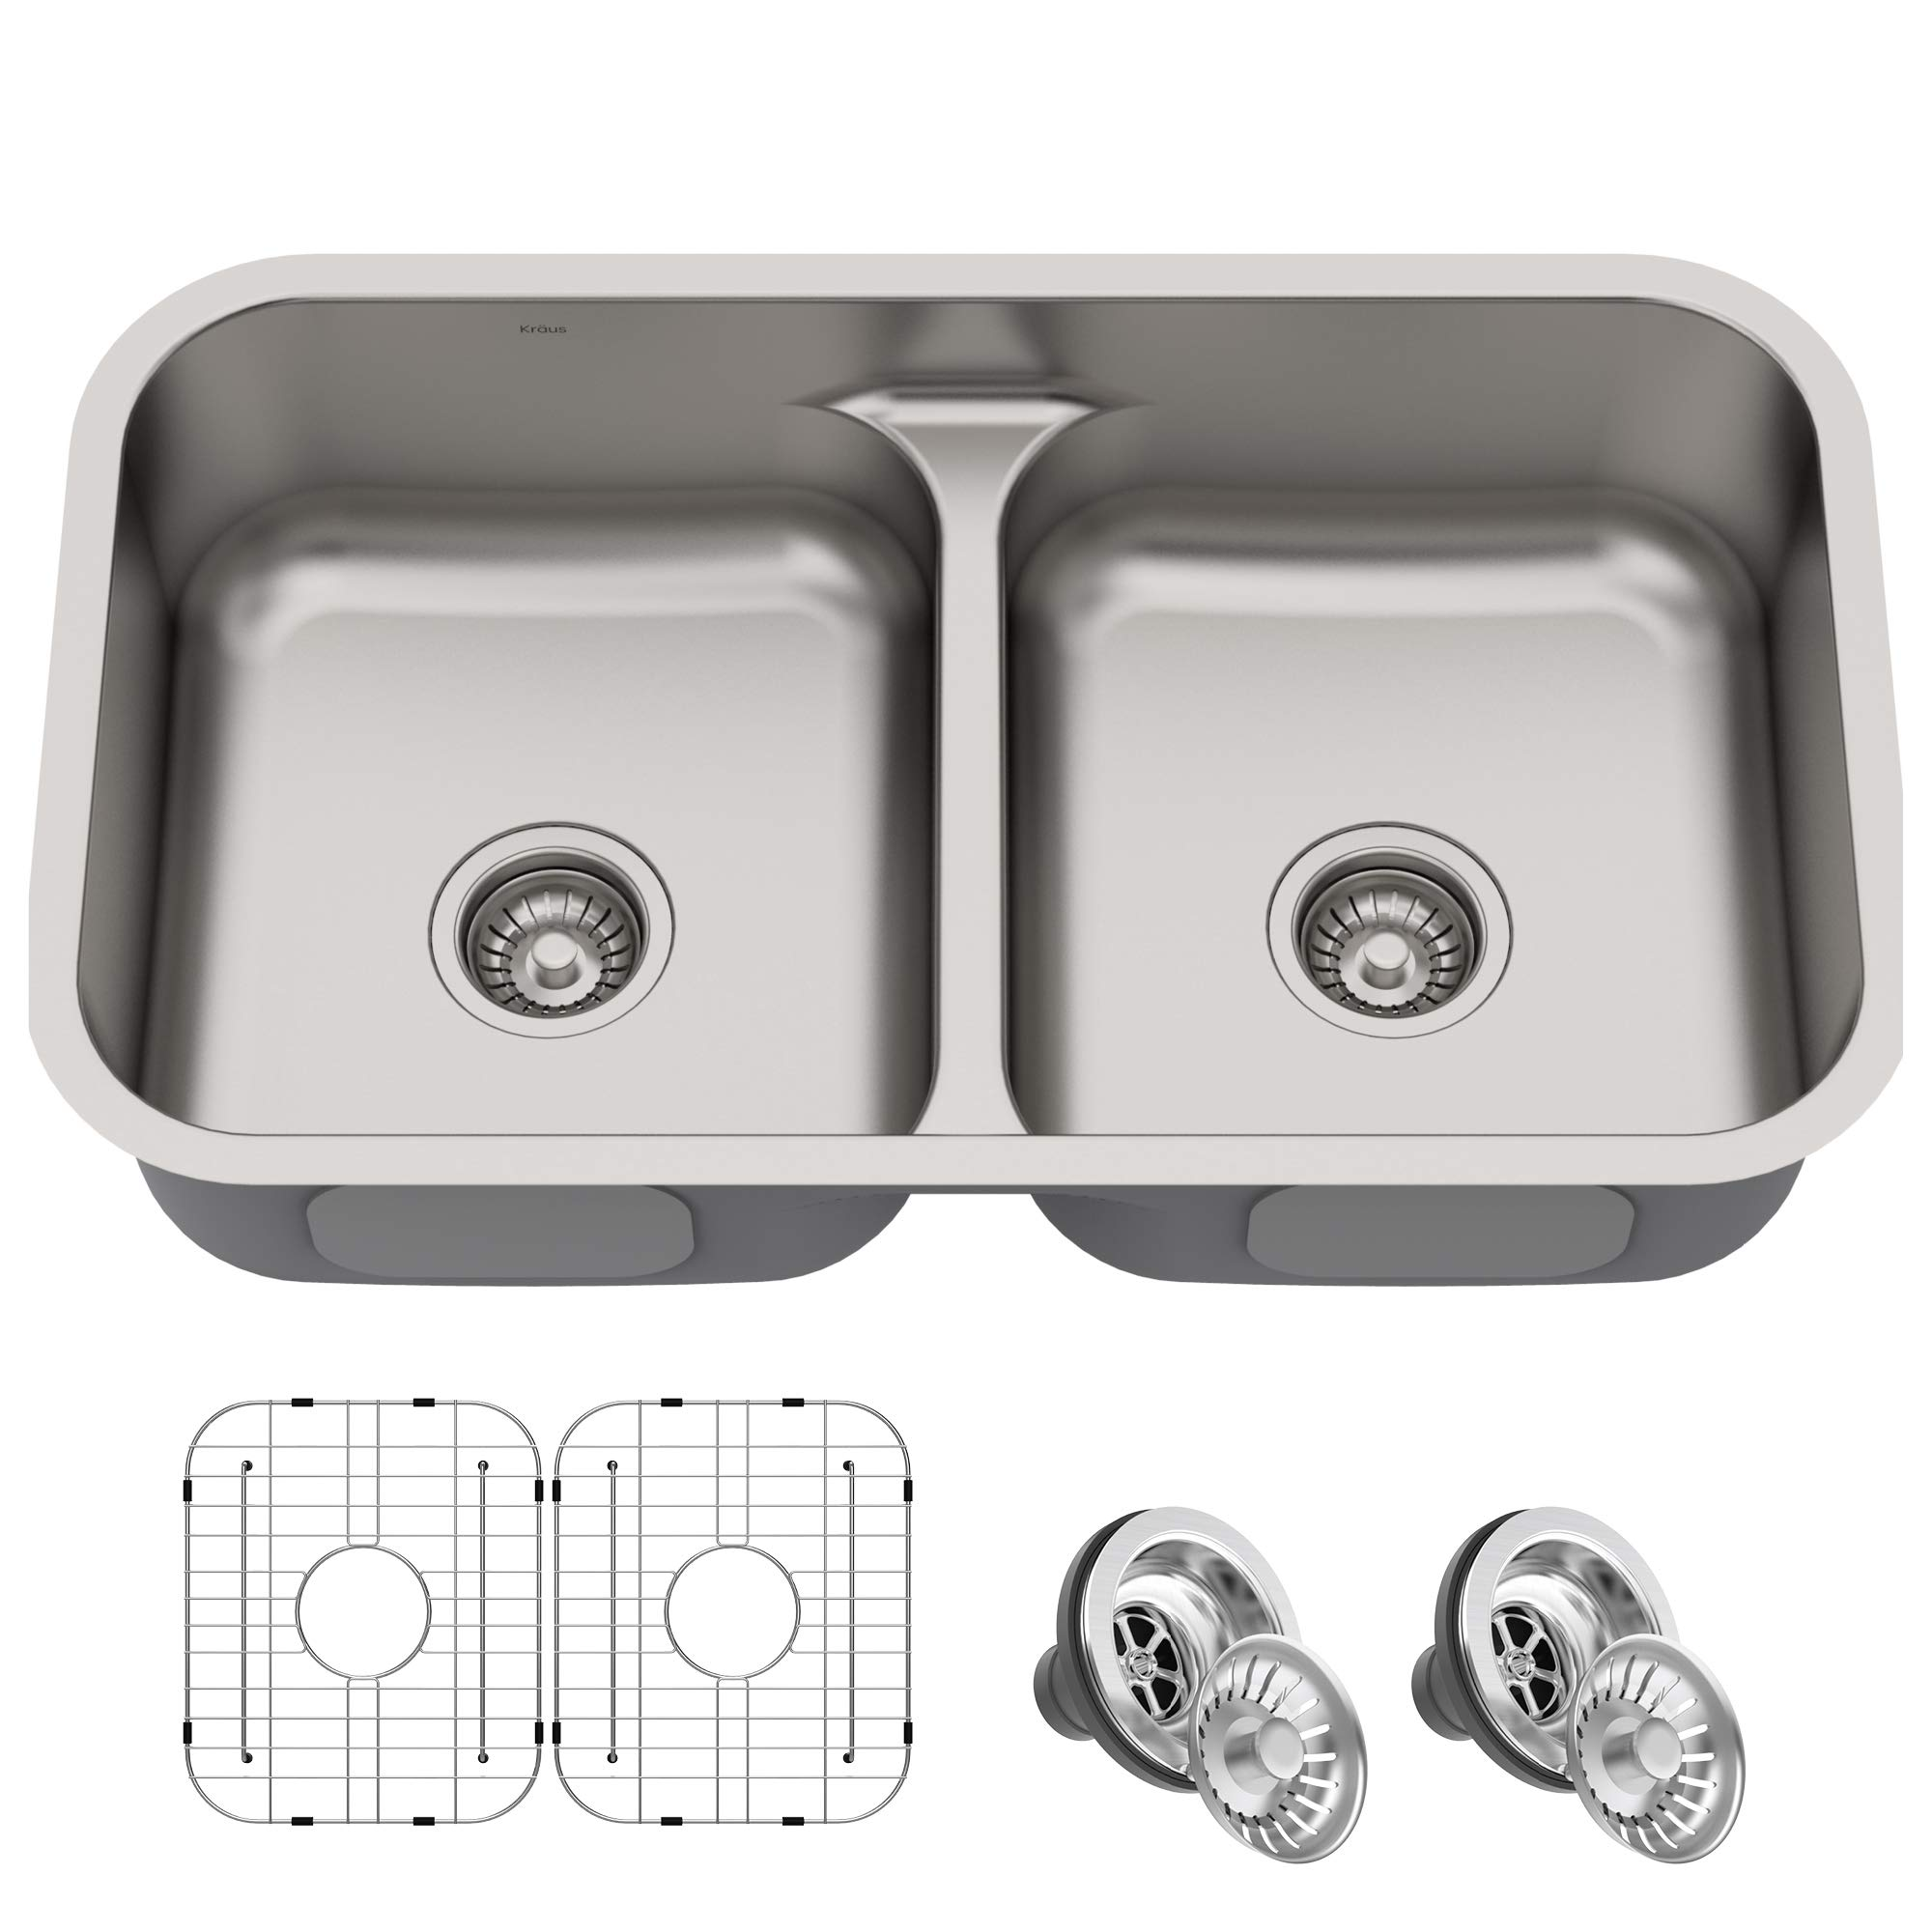 Kraus KBU32 Premier Kitchen Sink Double Bowl, Stainless Steel by Kraus